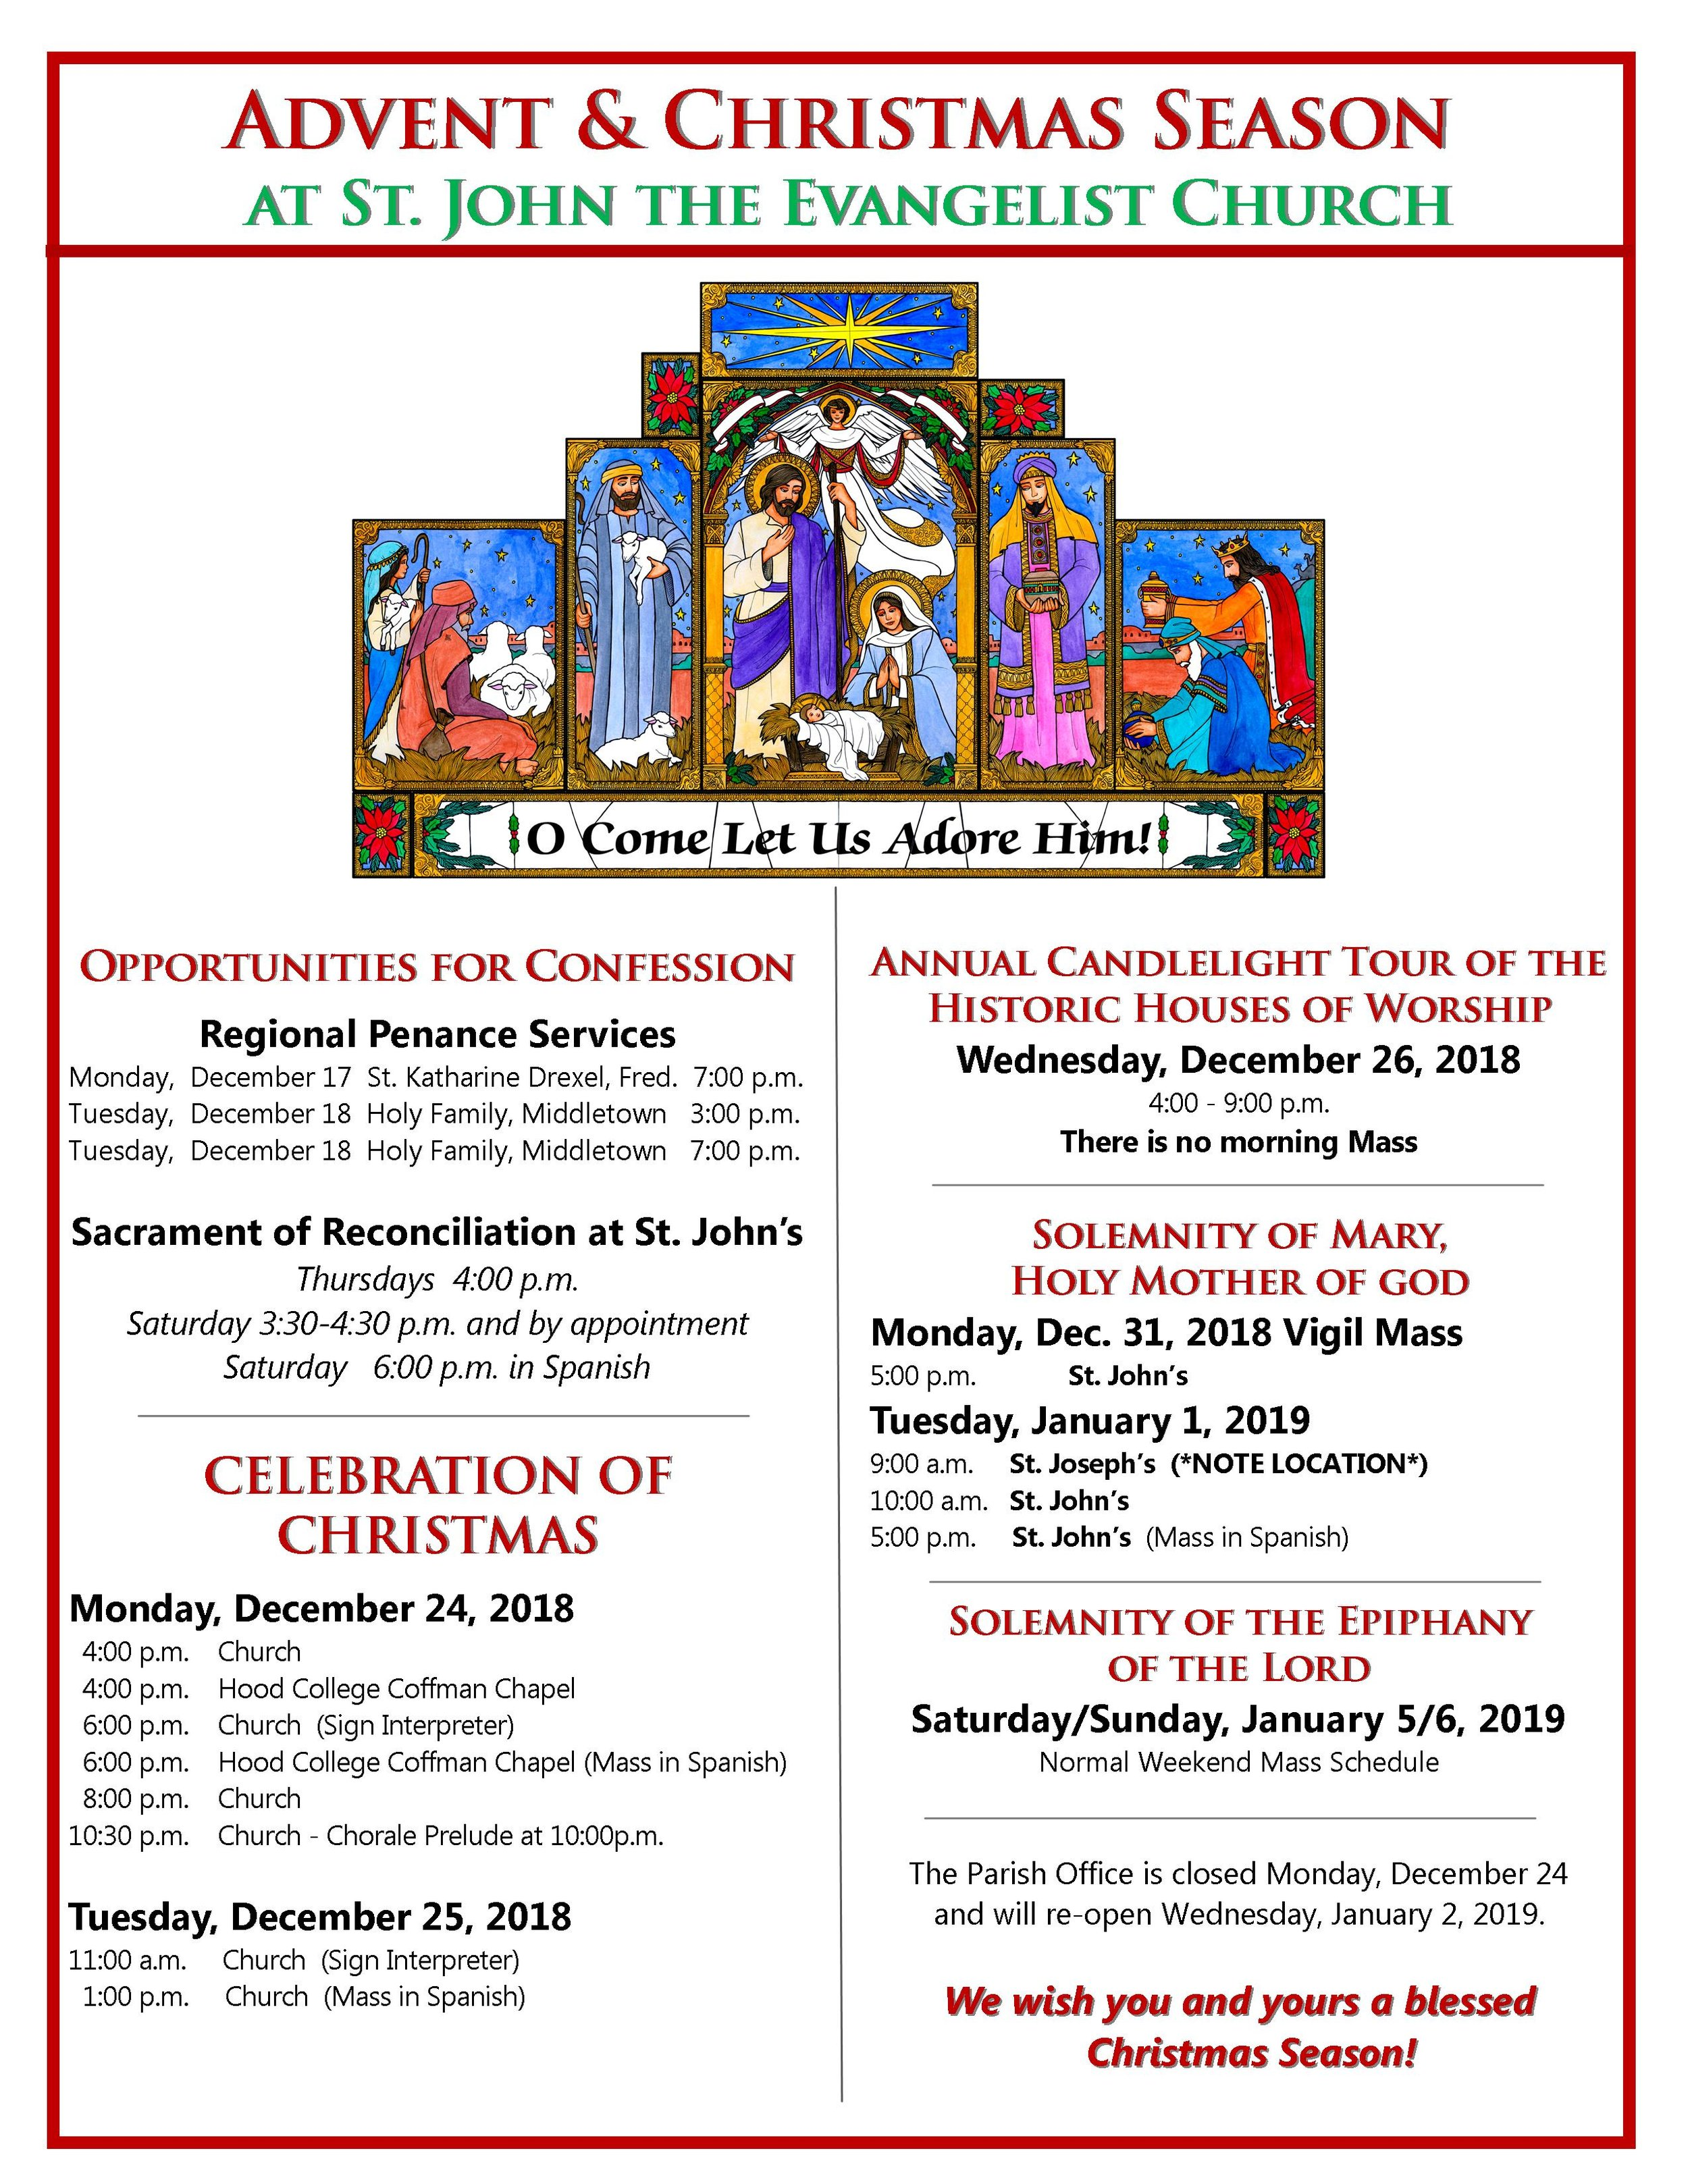 Christmas Season 2019 Christmas Season Schedule — St. John the Evangelist Catholic Church